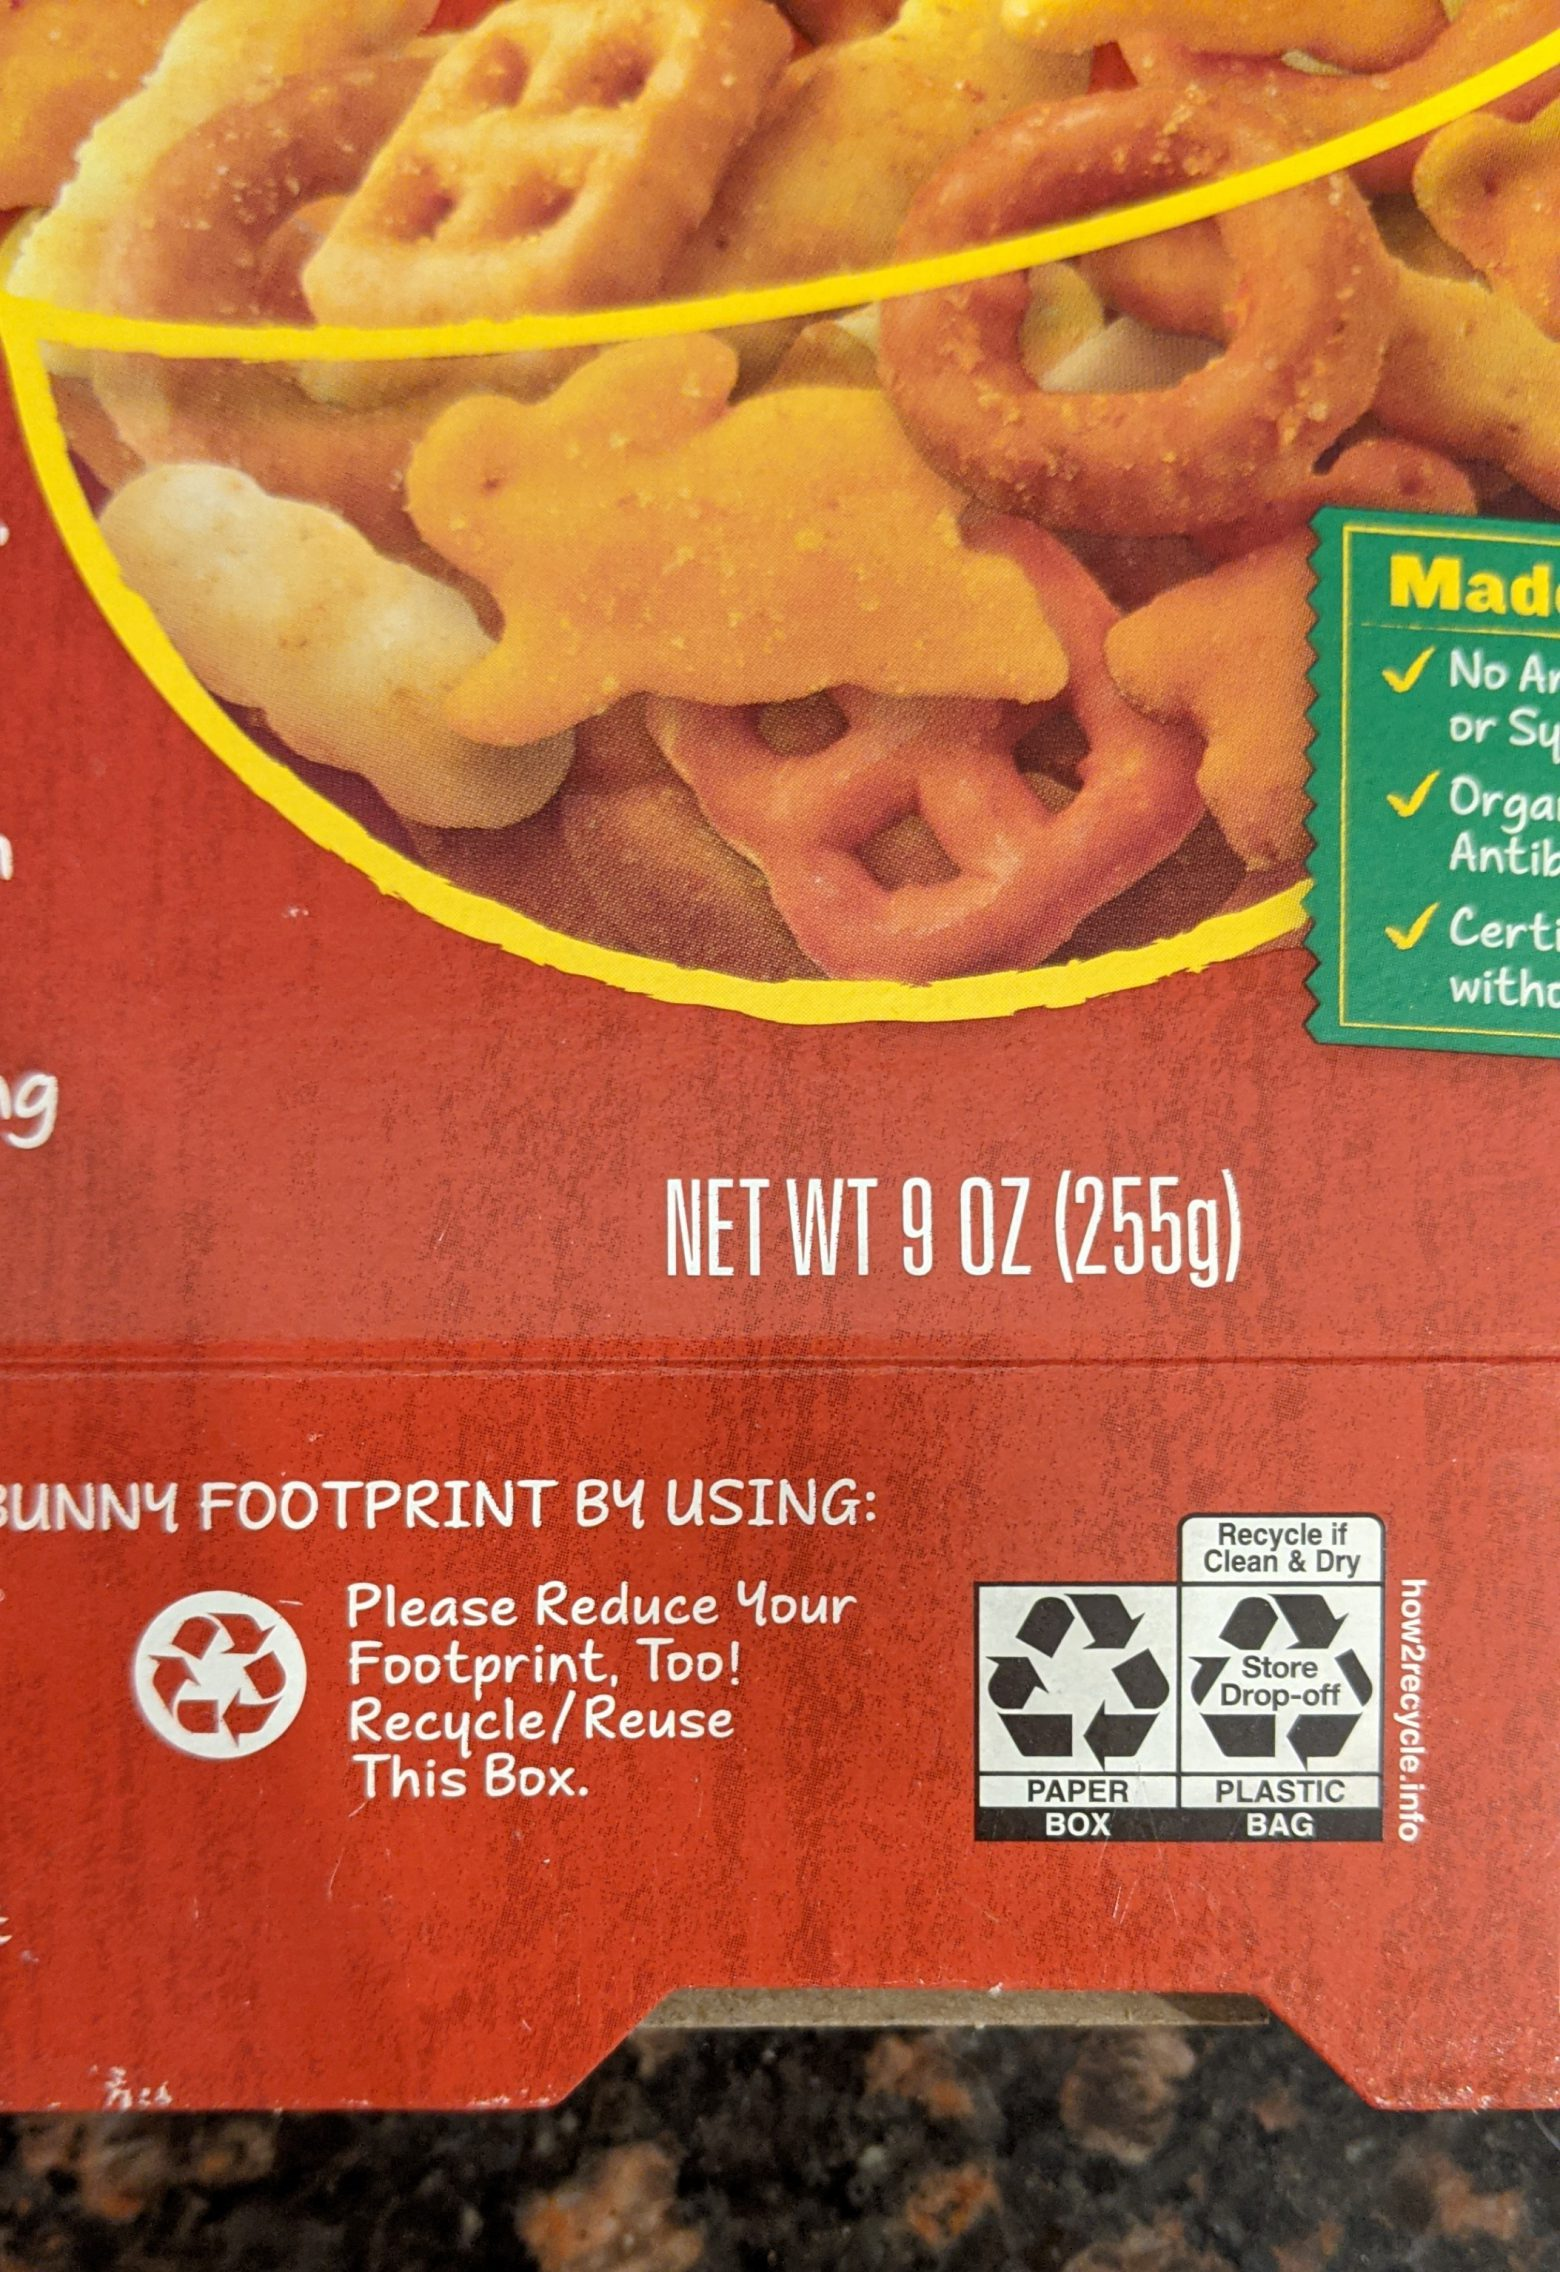 Snack Mix Packaging